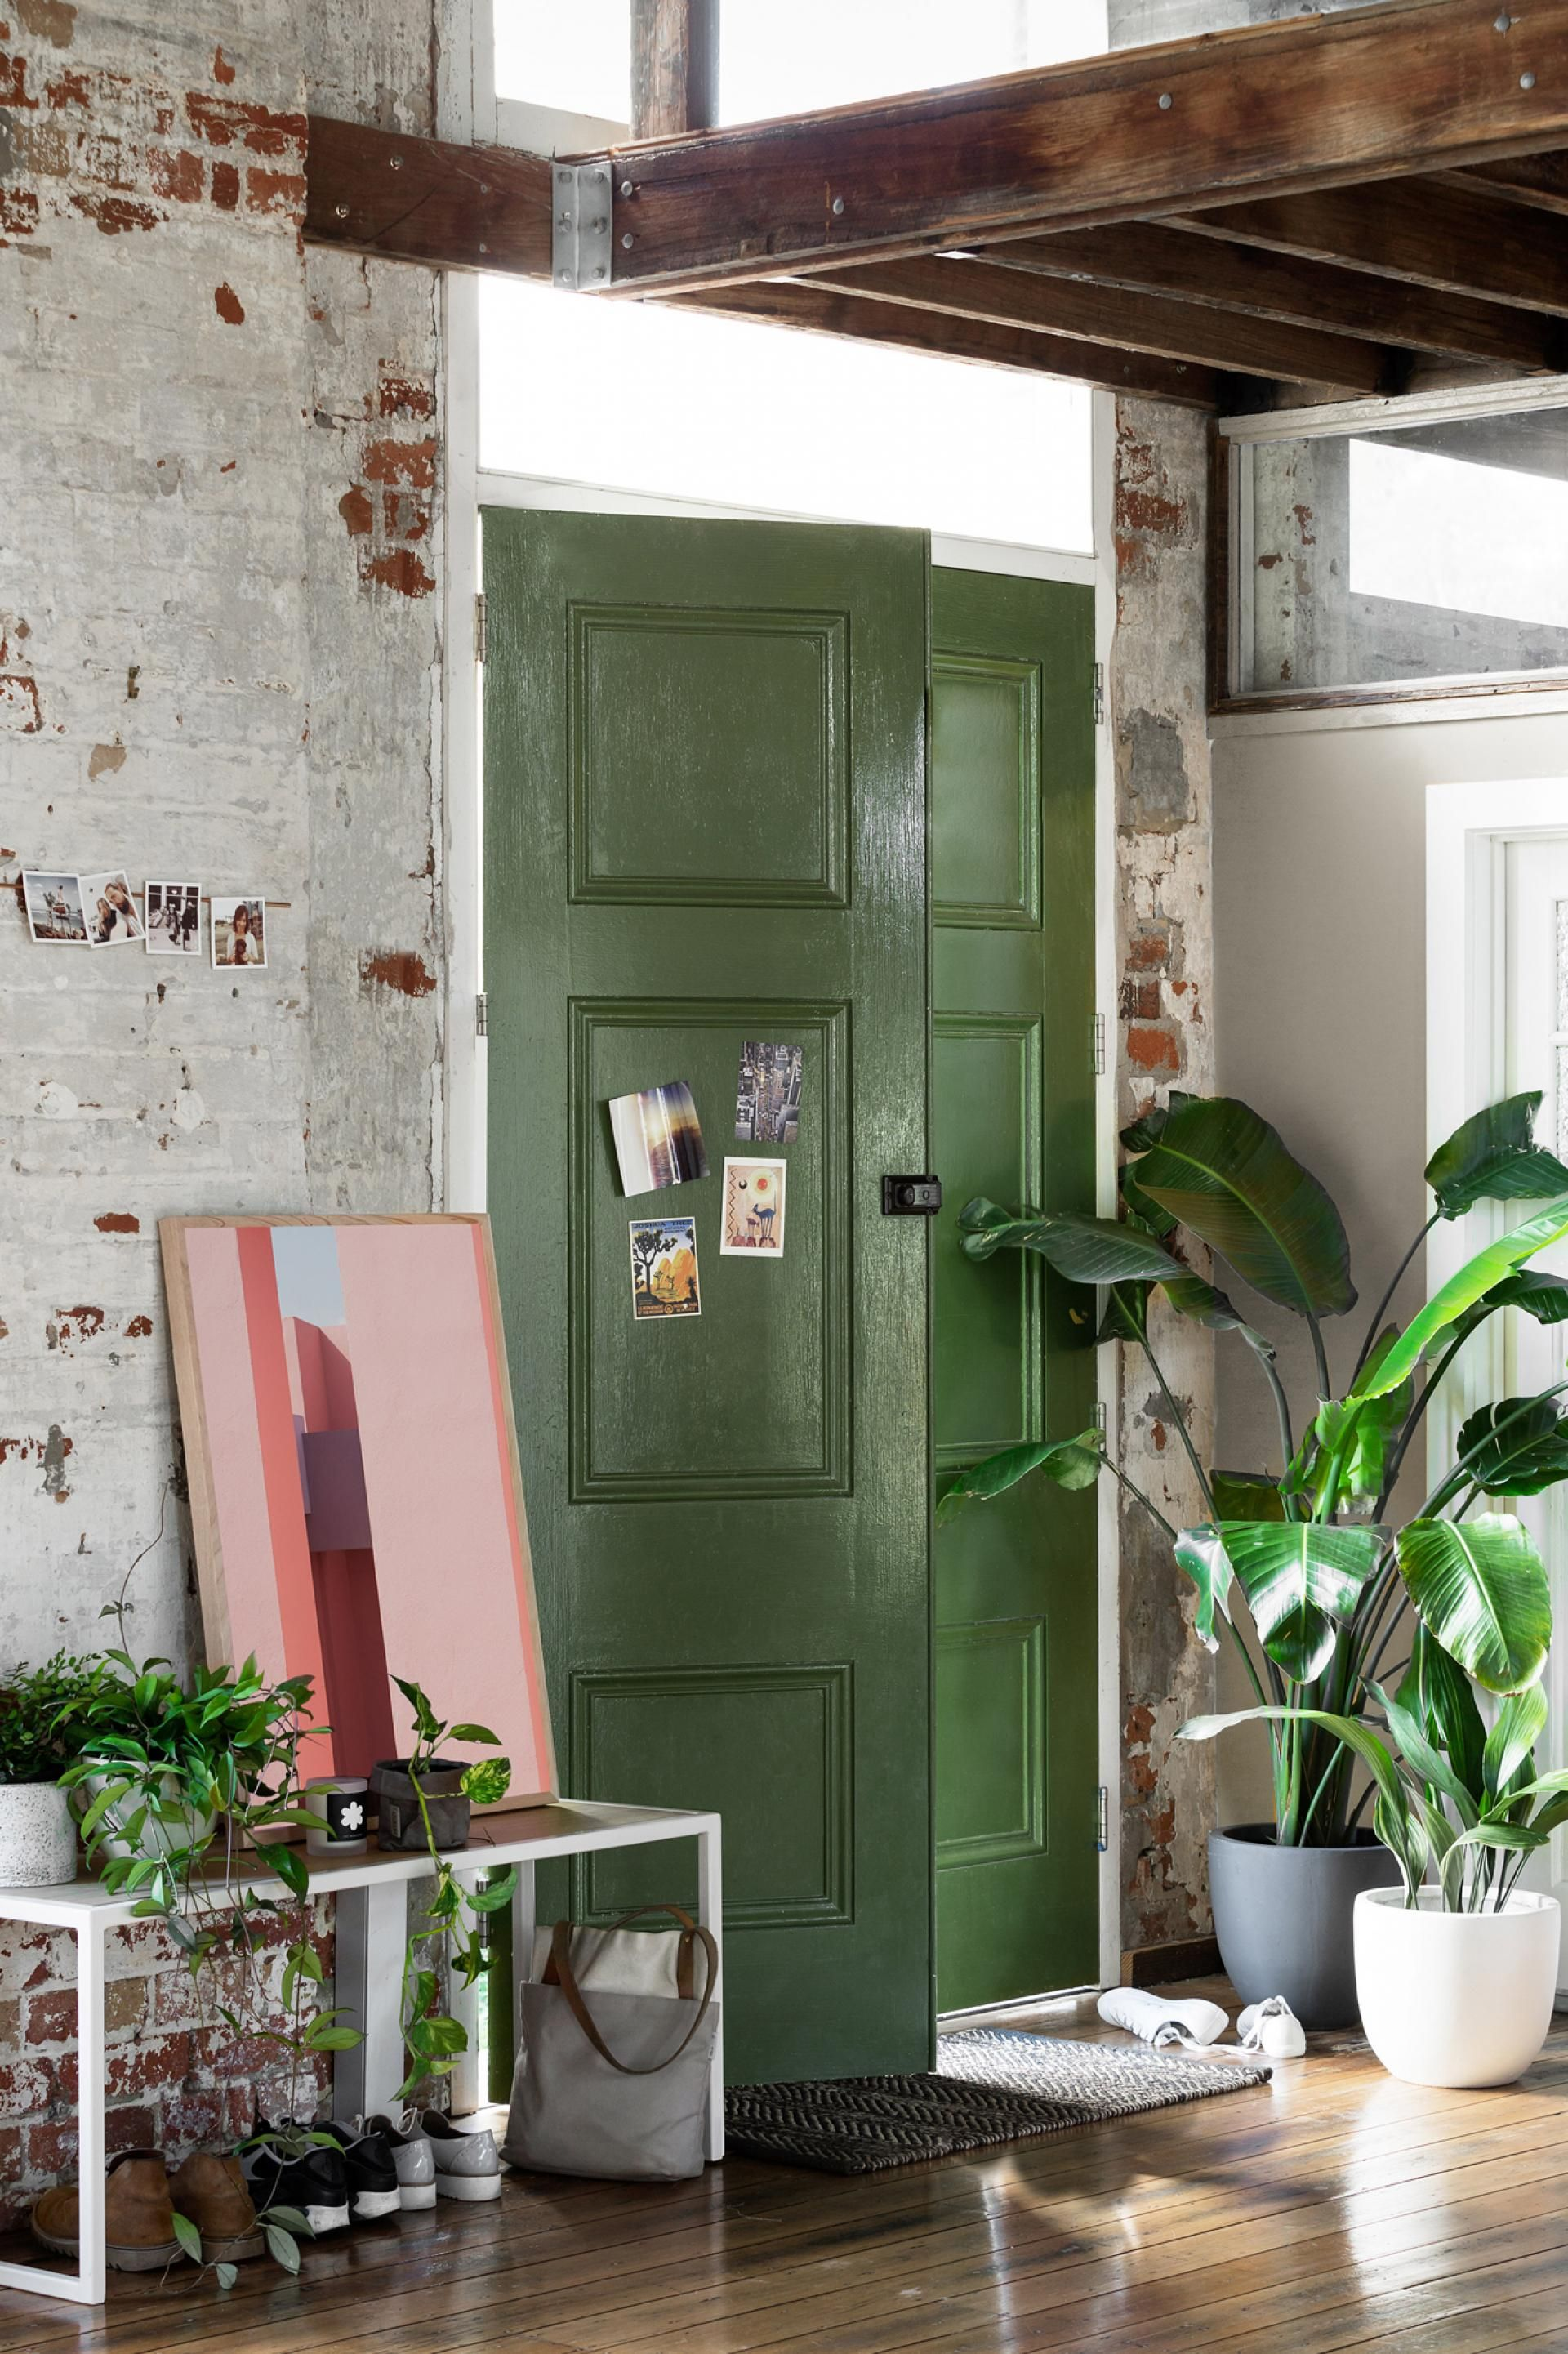 Inviting Loftindustrial Style Entry With Vibrant Green Doors